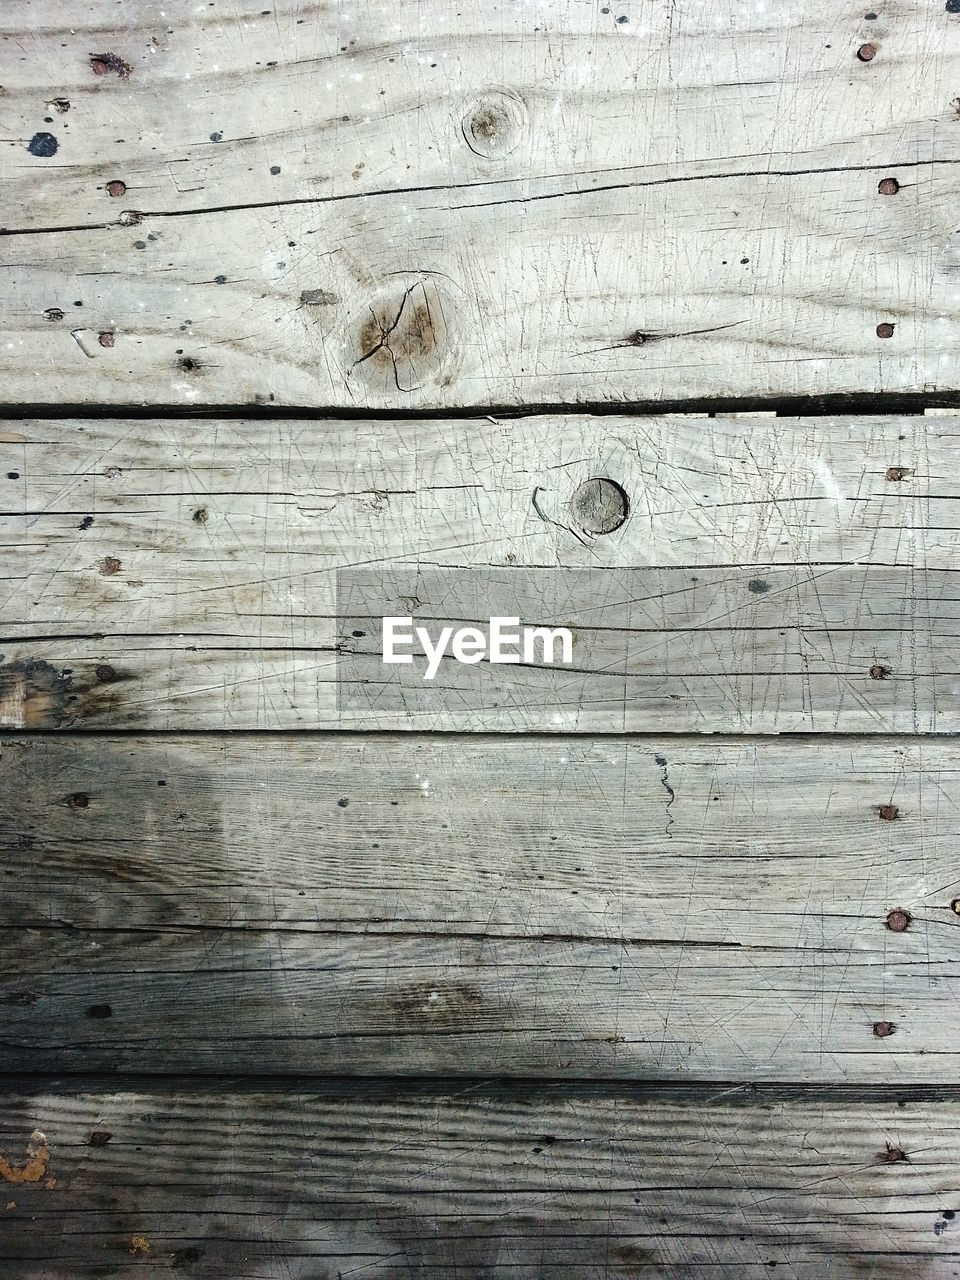 wood - material, textured, backgrounds, full frame, pattern, plank, wood, old, no people, rough, wood grain, weathered, close-up, flooring, cracked, wall - building feature, damaged, day, brown, obsolete, outdoors, wood paneling, dirty, textured effect, nail, antique, surface level